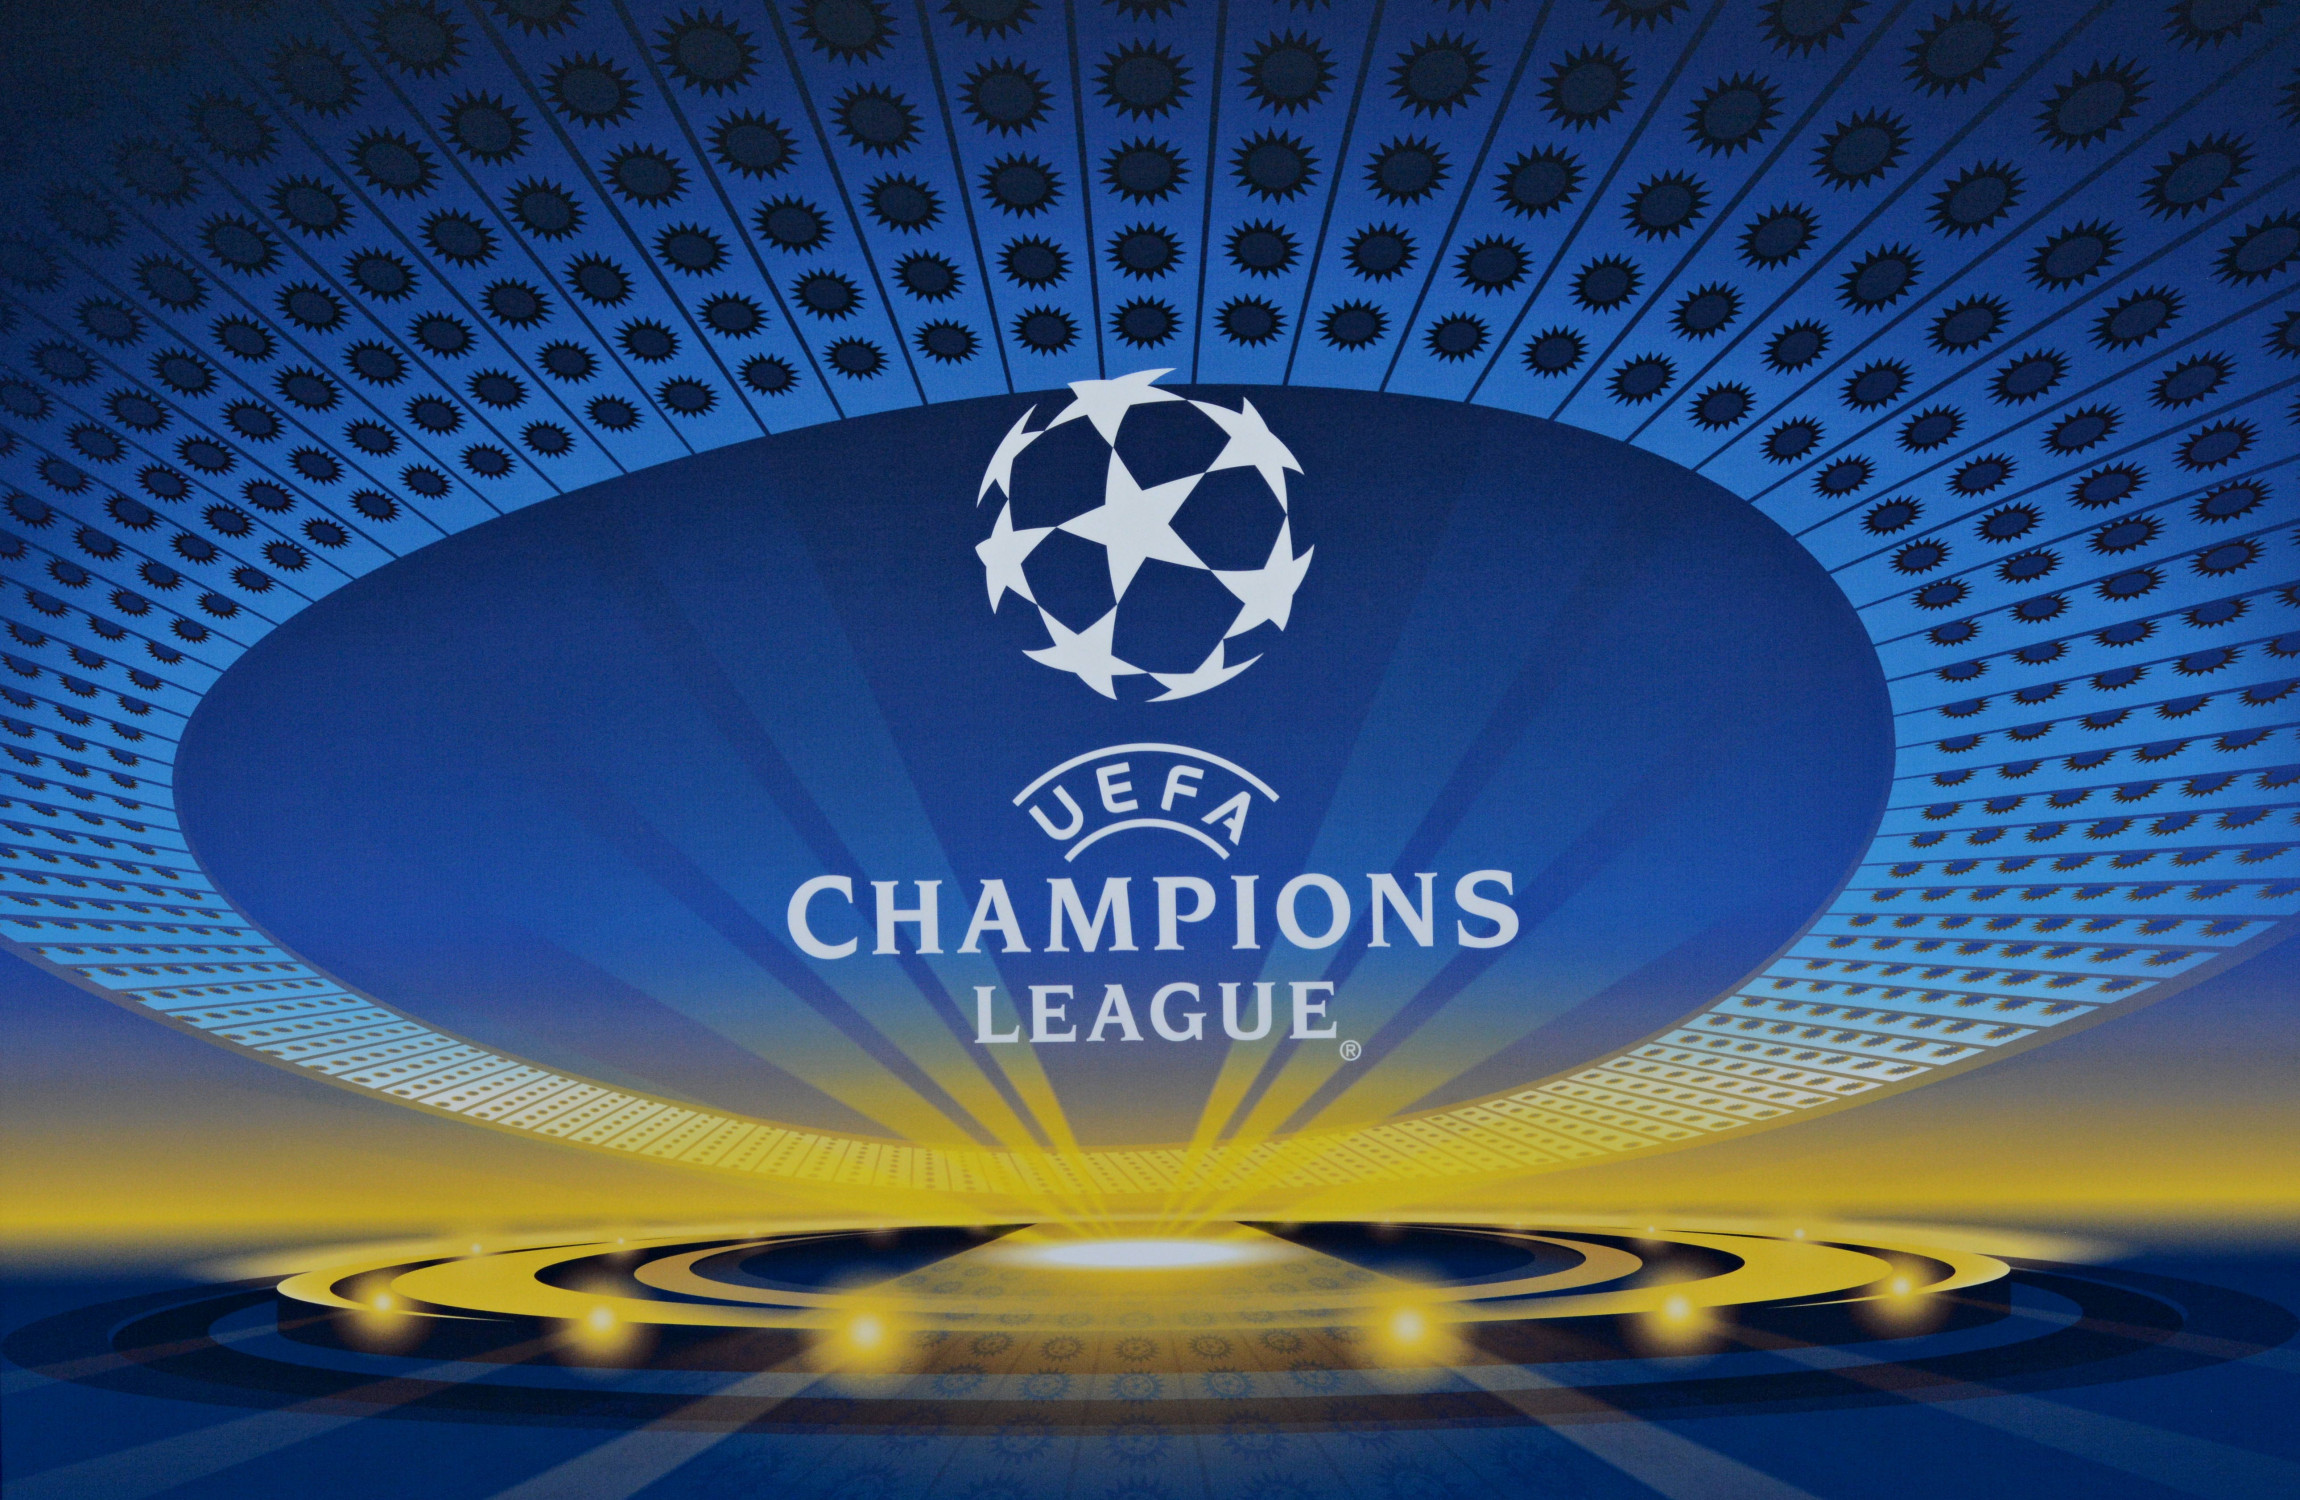 TV3 wins rights to broadcast the majority of Champions League